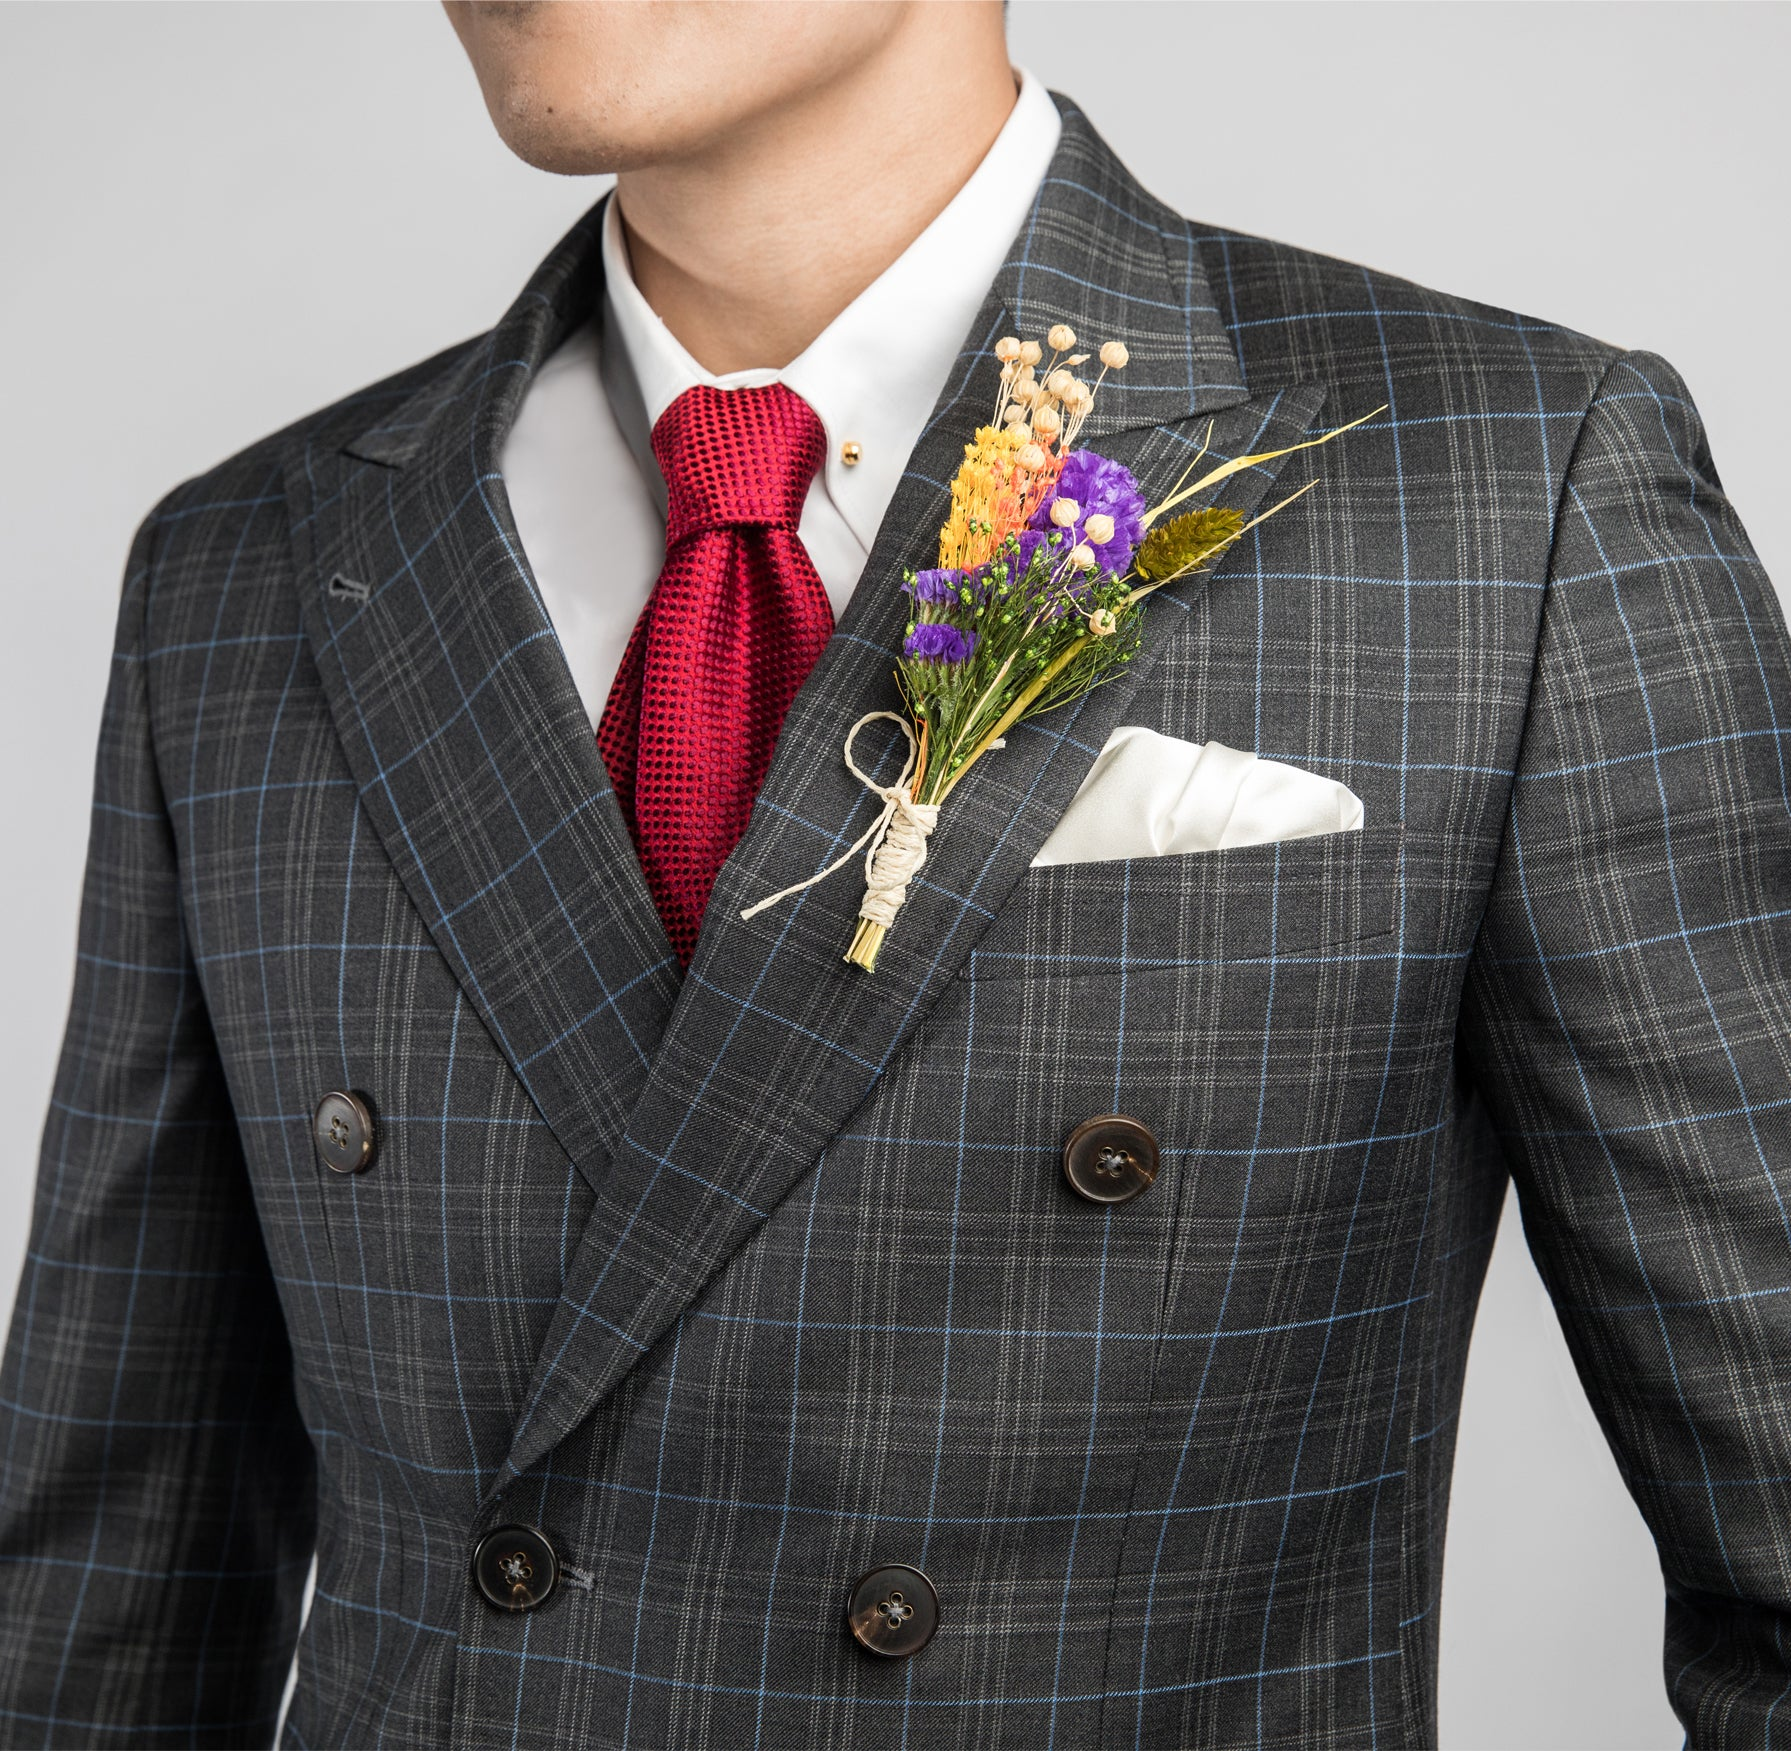 Charcoal Check Double Breasted Suit by CYC Made to Measure Tailor